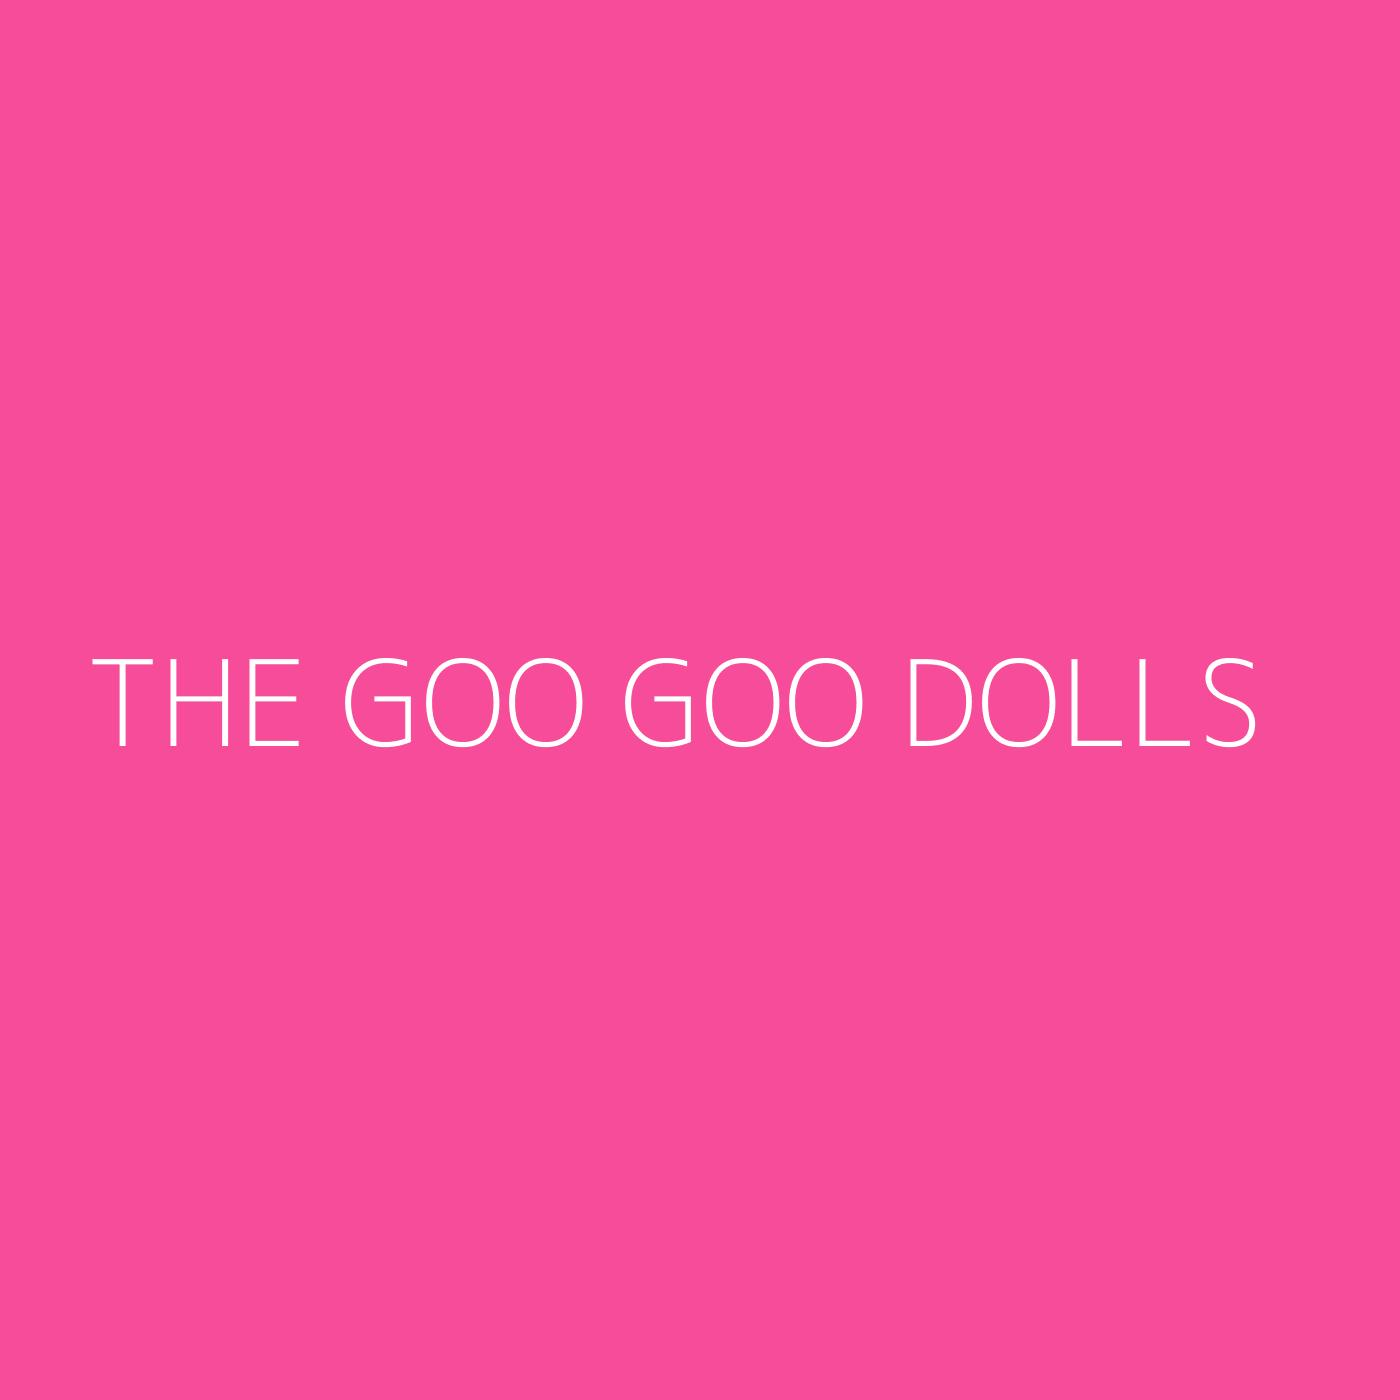 The Goo Goo Dolls Playlist Artwork